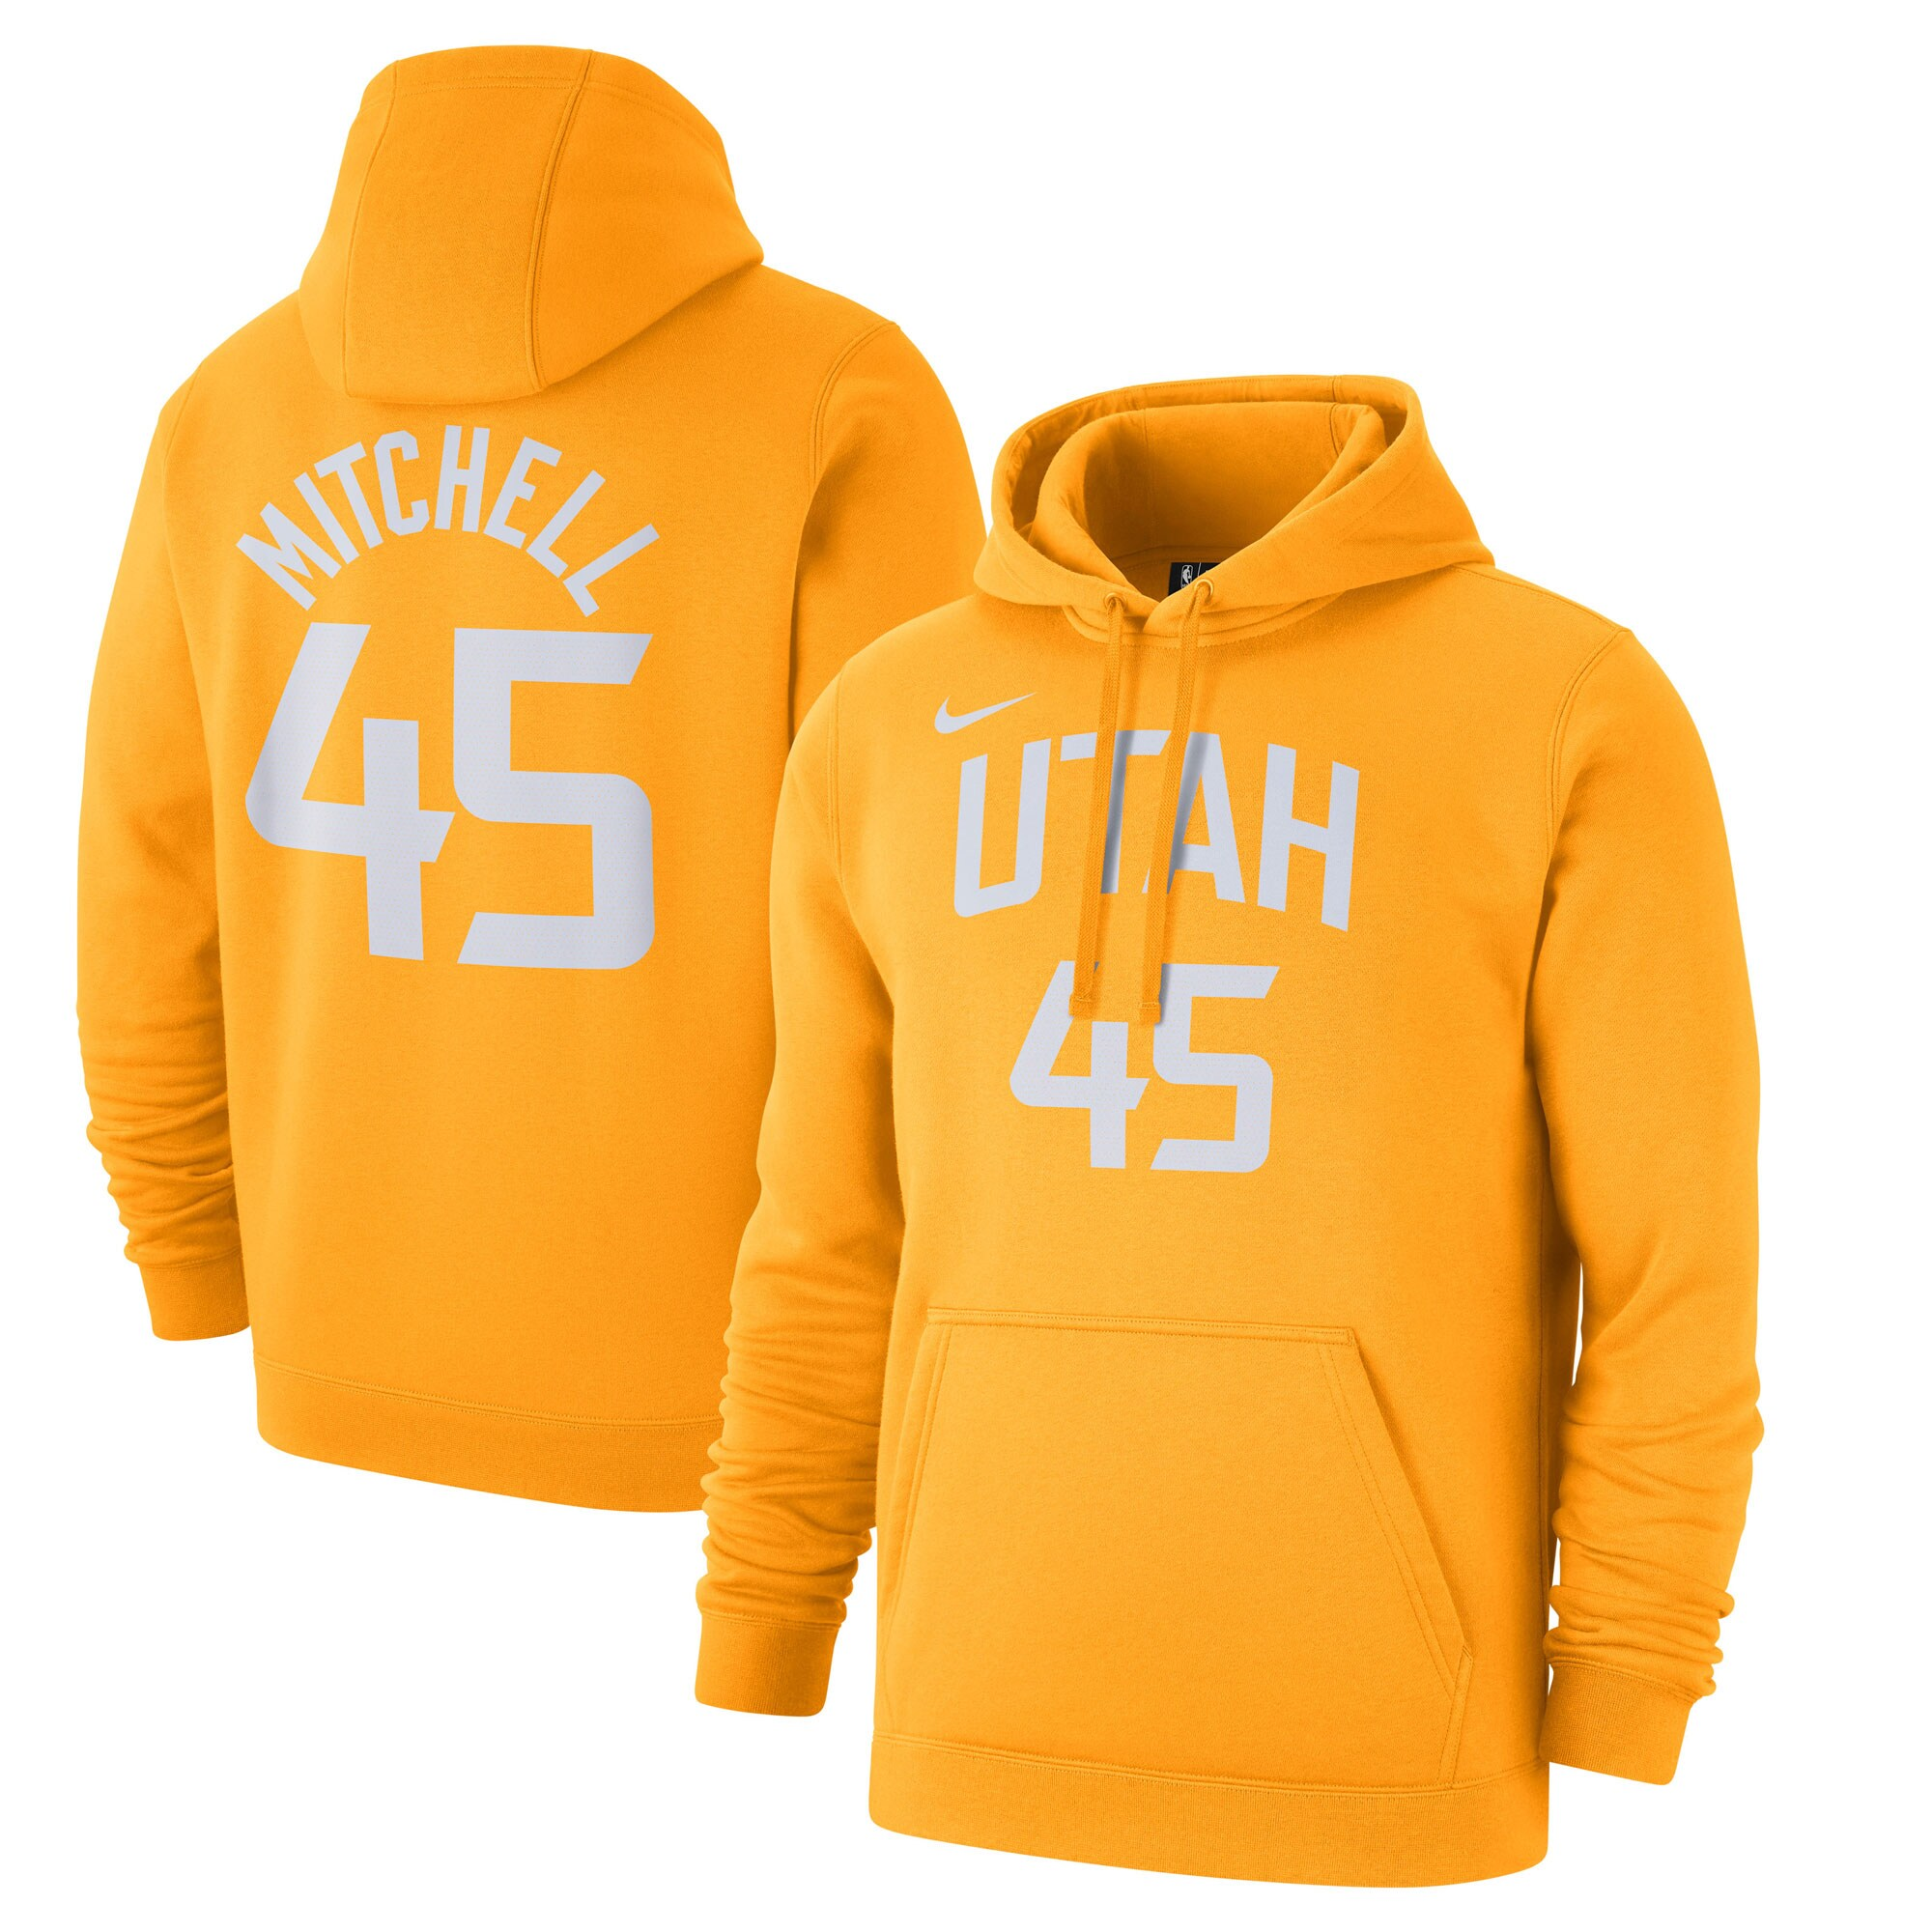 Donovan Mitchell Utah Jazz Nike 2019/20 City Edition Name & Number Pullover Hoodie - Gold